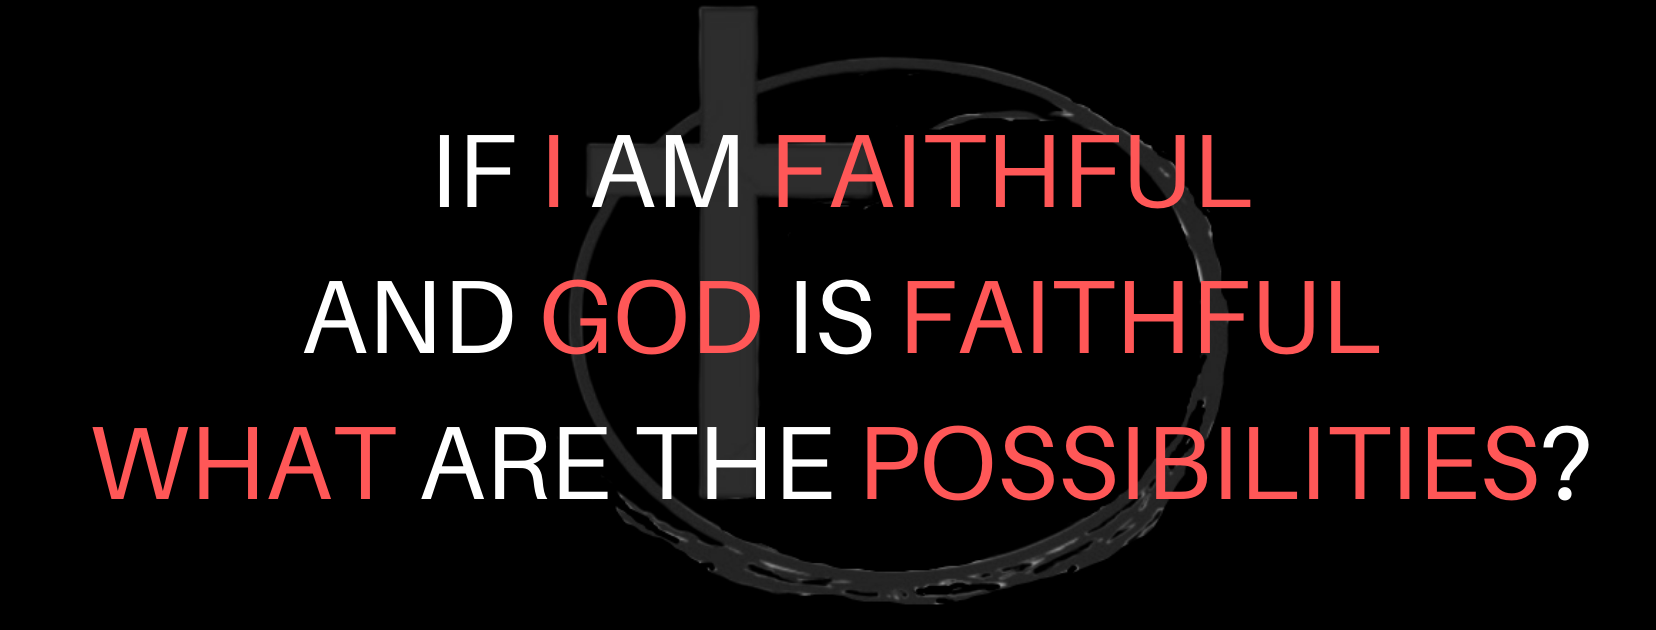 IF I AM FAITHFUL AND GOD IS FAITHFUL WHA